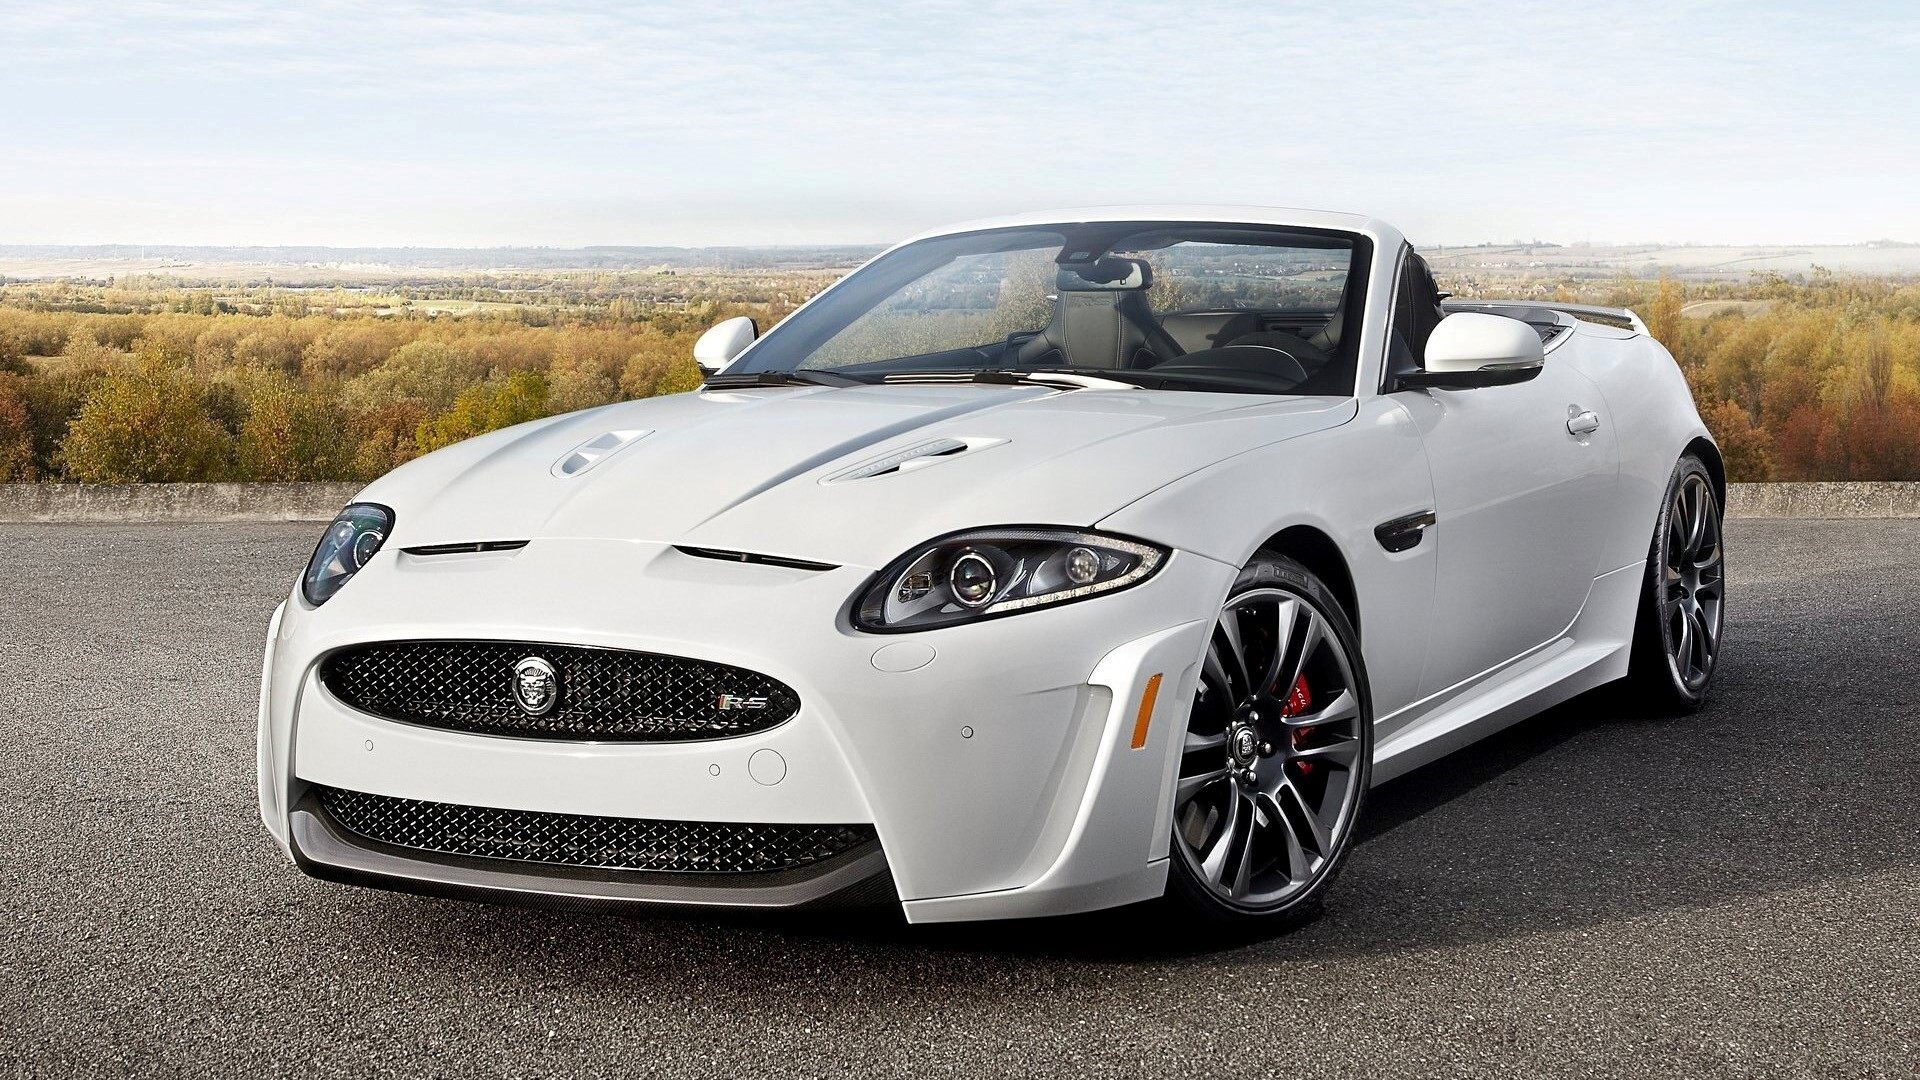 Captivating Jaguar Coupe XKR S White 2013 Luxury Convertible Car Wallpaper